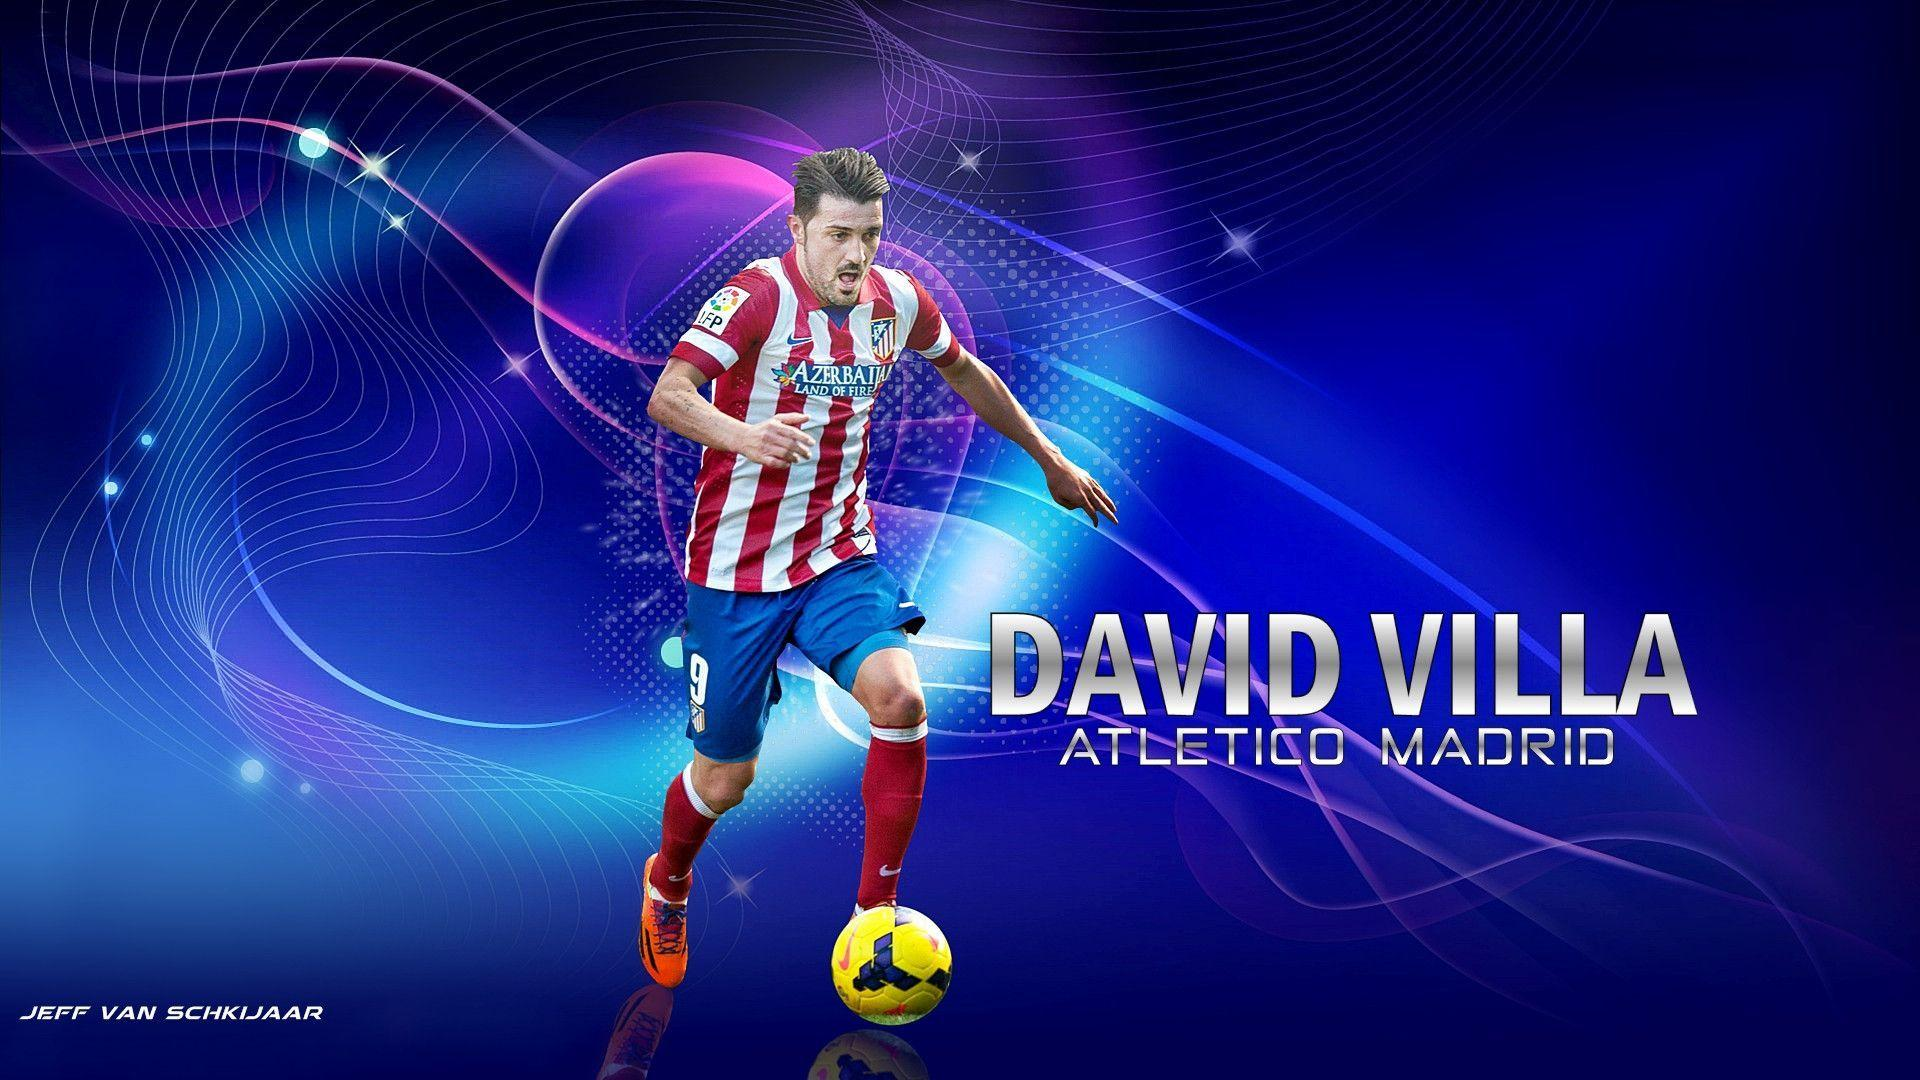 Fonds d&Atletico Madrid : tous les wallpapers Atletico Madrid